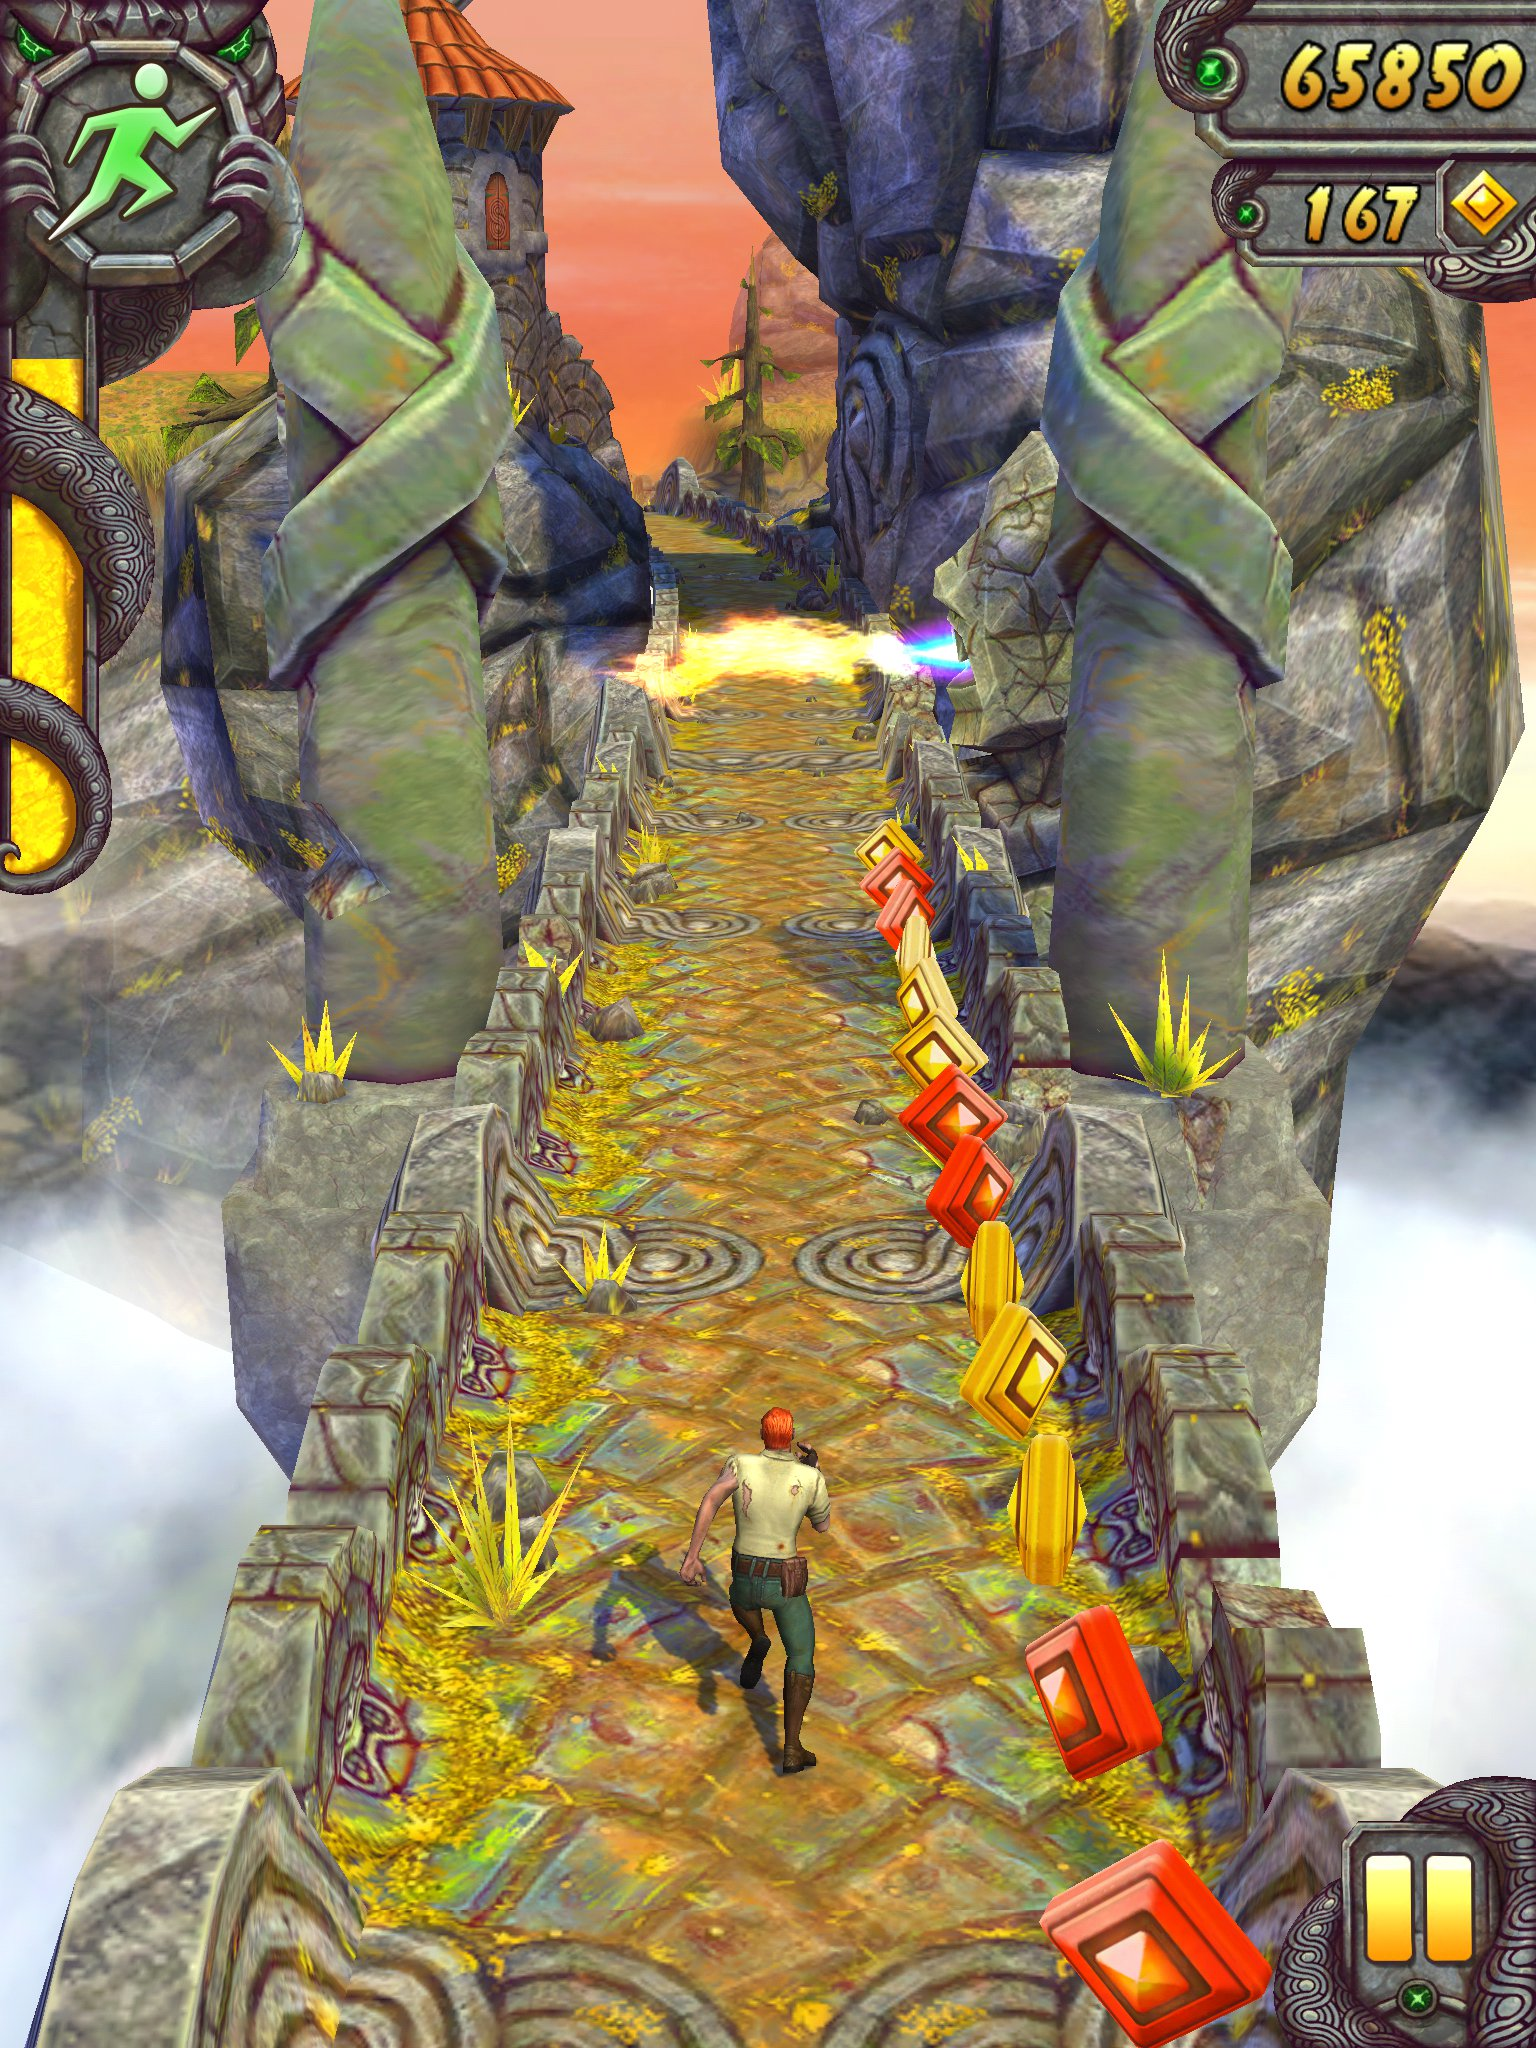 Temple Run 2 races through the 20 million downloads barrier on iOS